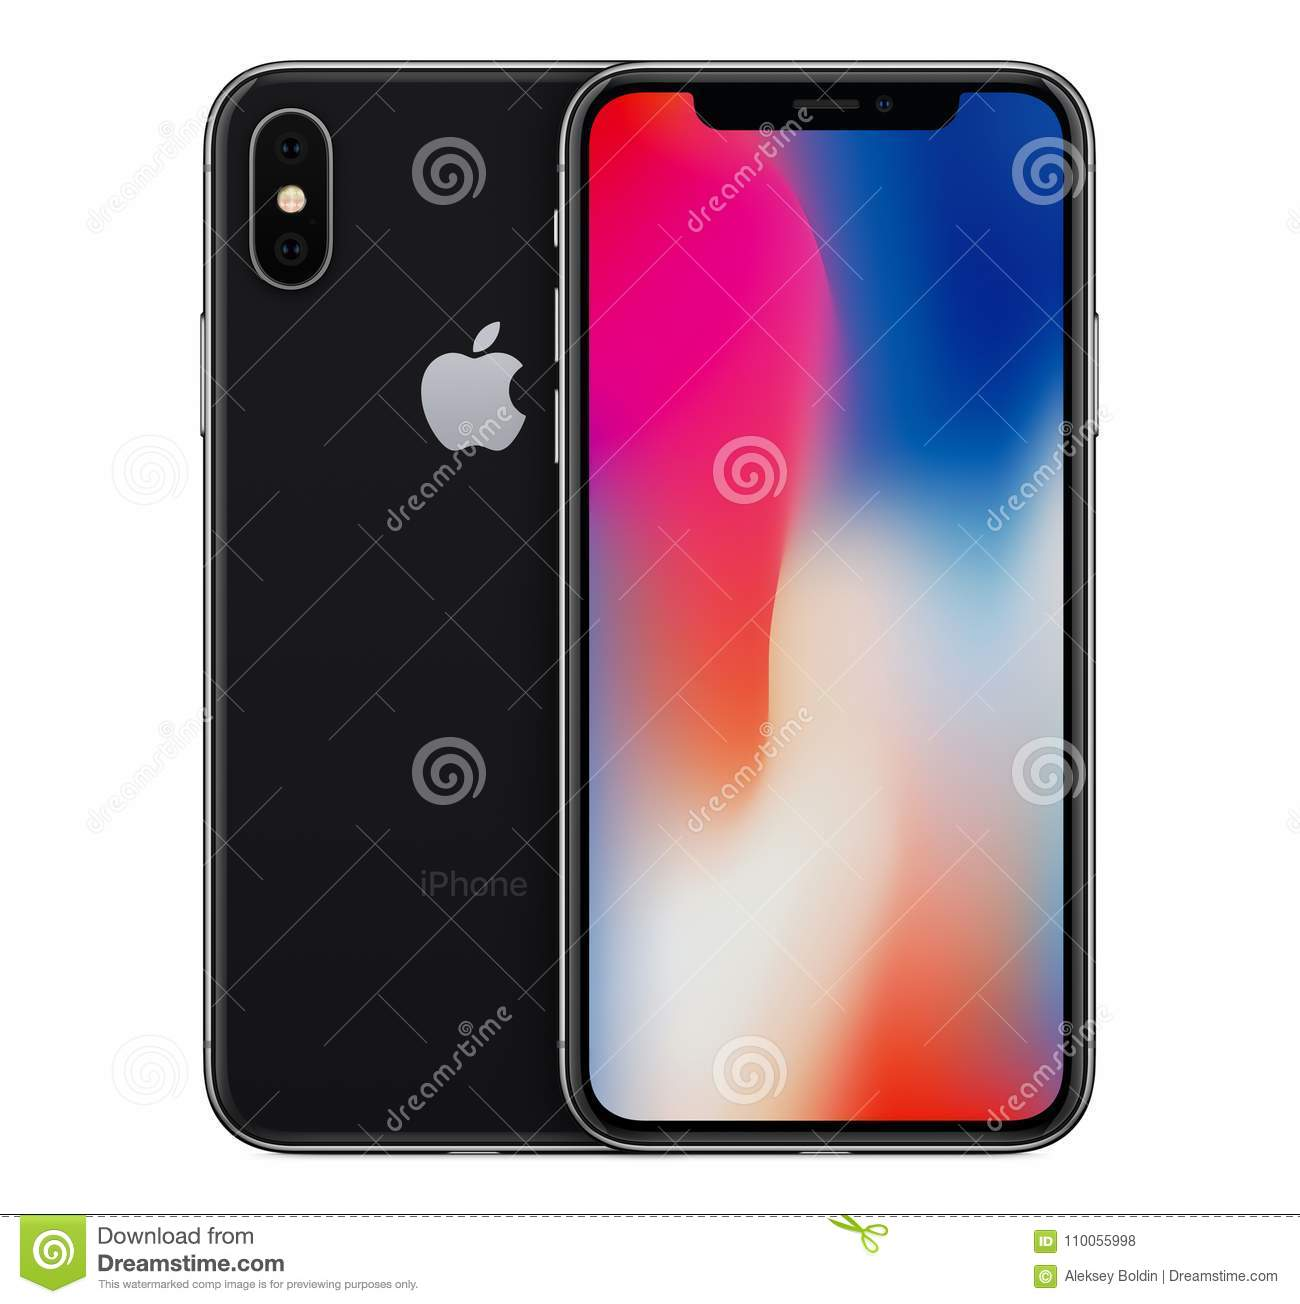 Space Gray Apple iPhone X mockup front view with wallpaper screen and iPhone 10 back side. Download preview